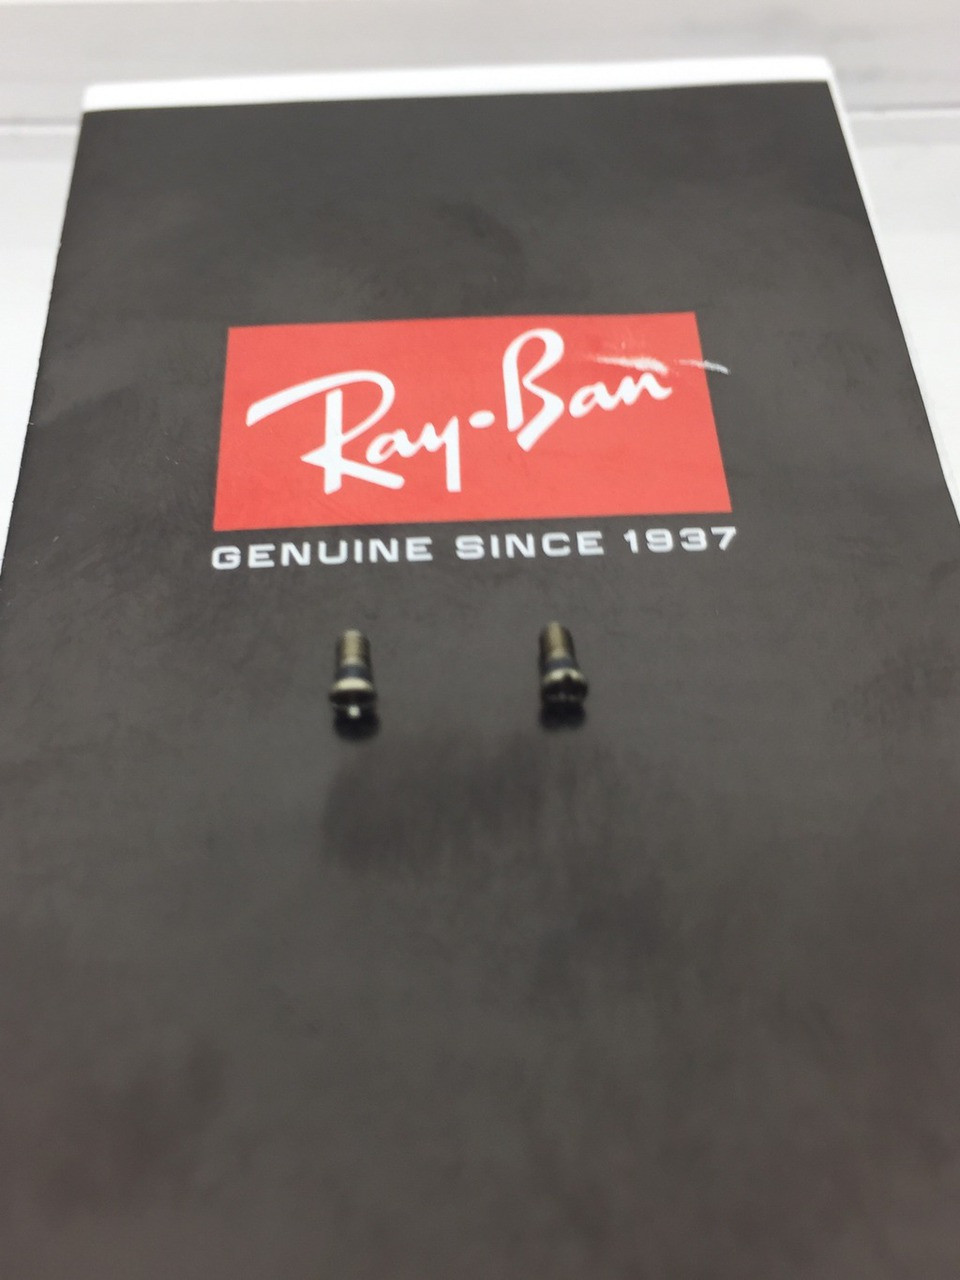 42970c09e5864 ... Authentic Rayban 3025   Aviator Temples or Rim Replacement screws  Silver. Image 1. Loading zoom